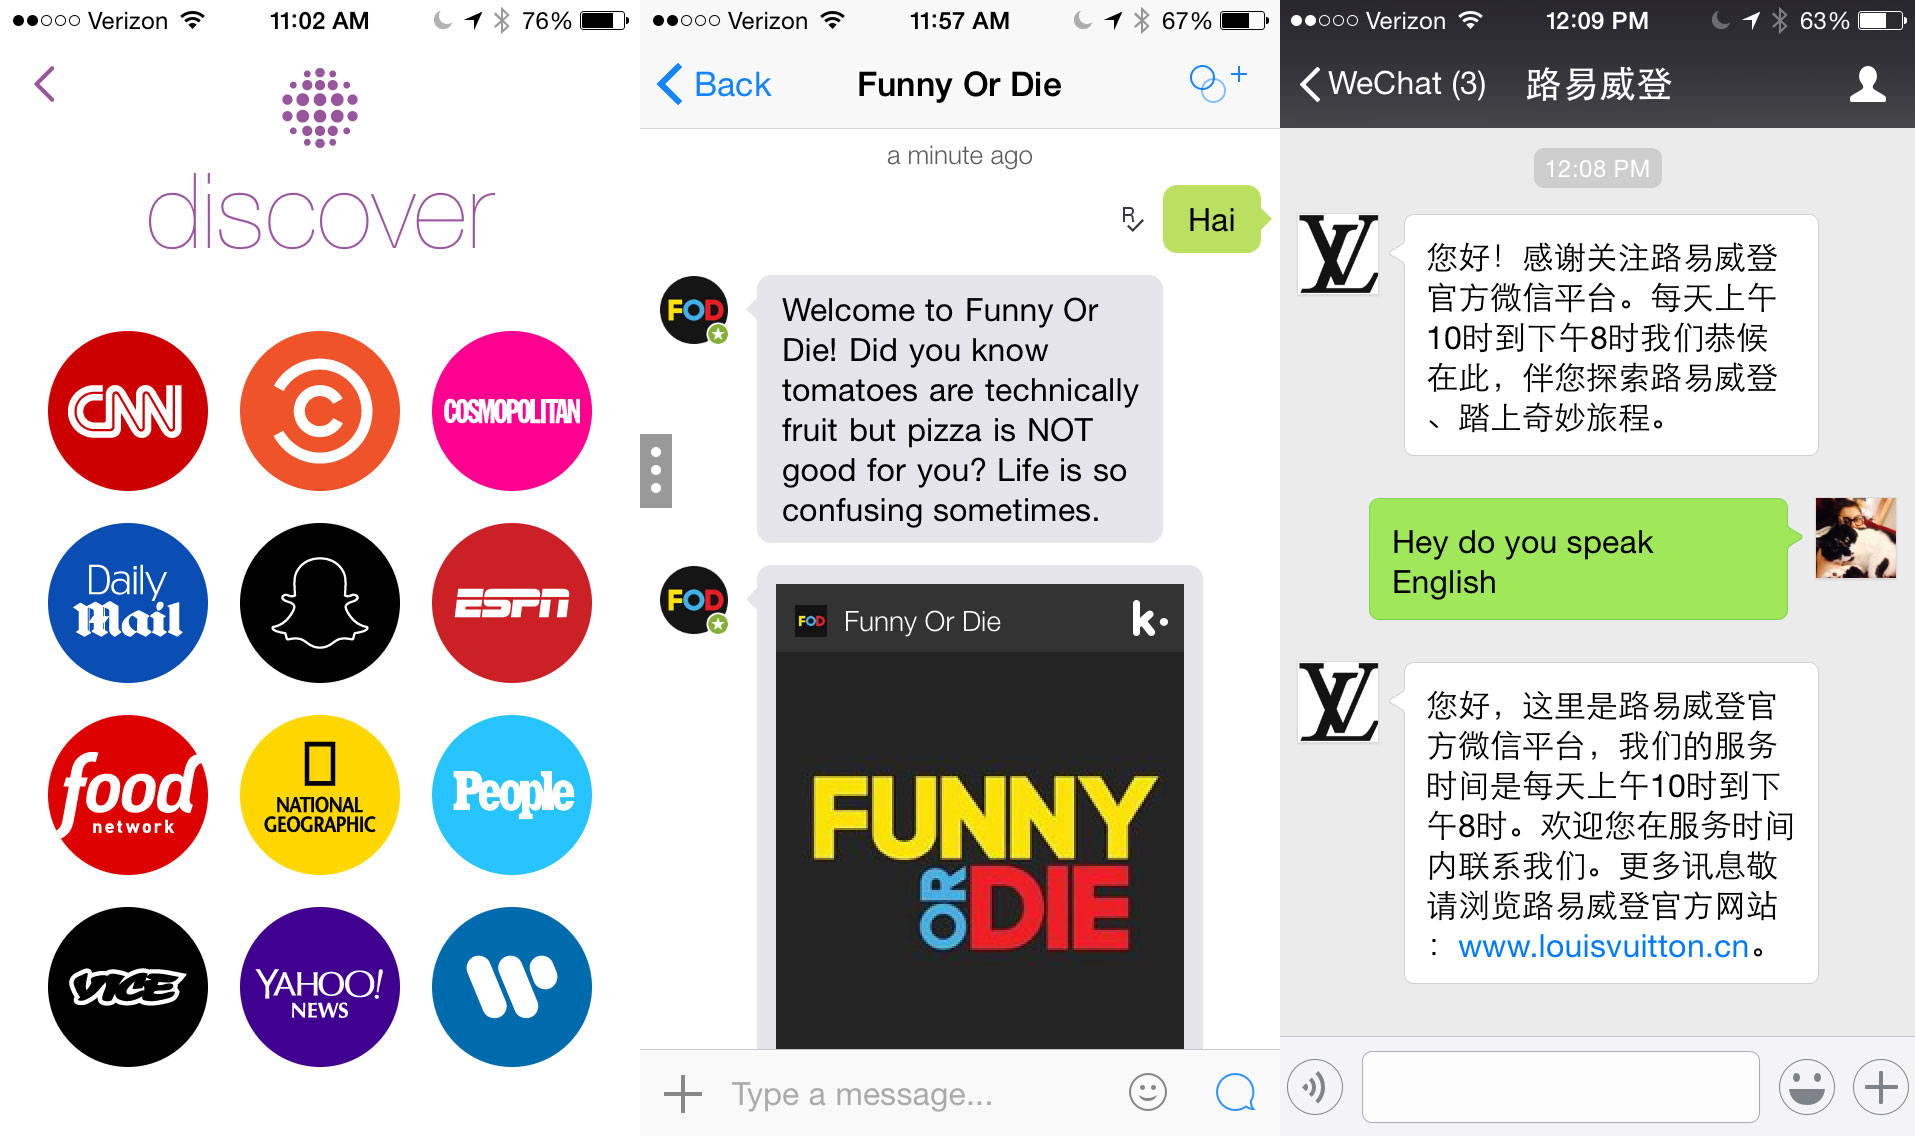 Left: Snapchat's Discover section; Middle: Kik's chat option with Funny or Die; Right: WeChat's chat option with Louis Vuitton